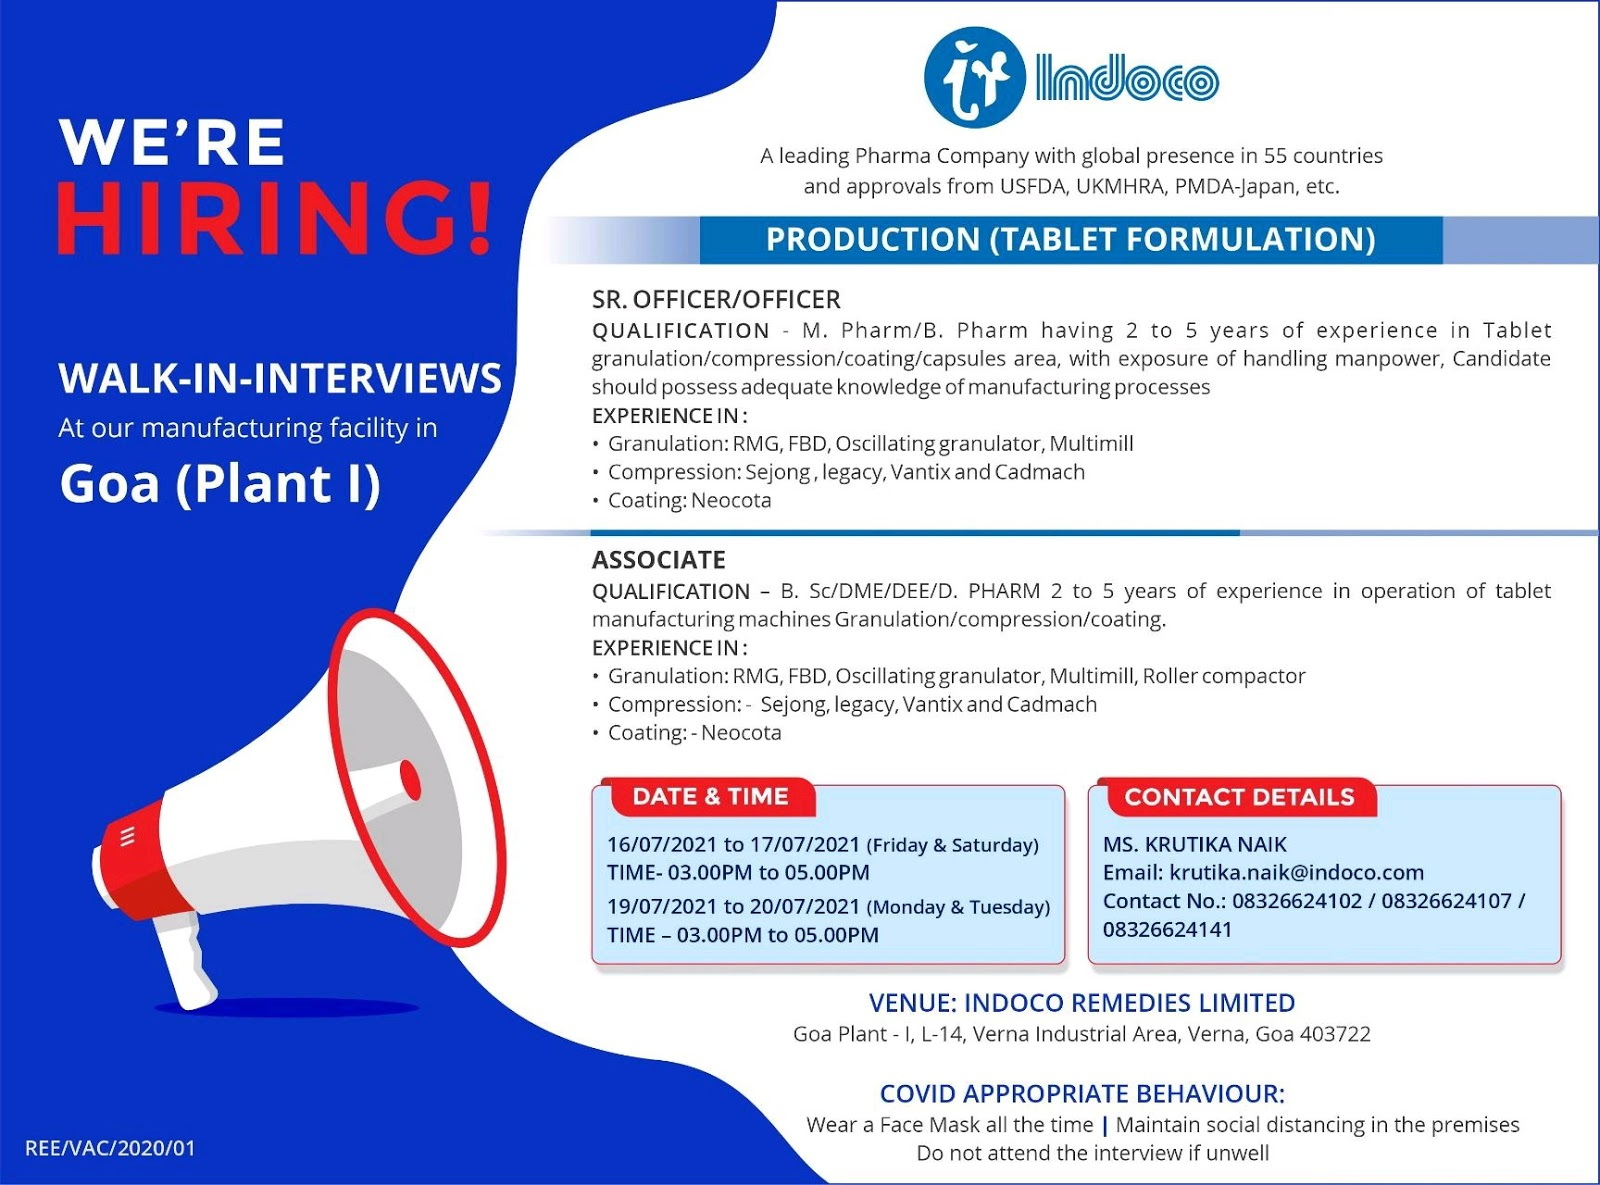 Walk-in For Production-Tablet Formulation At Indoco Remedies